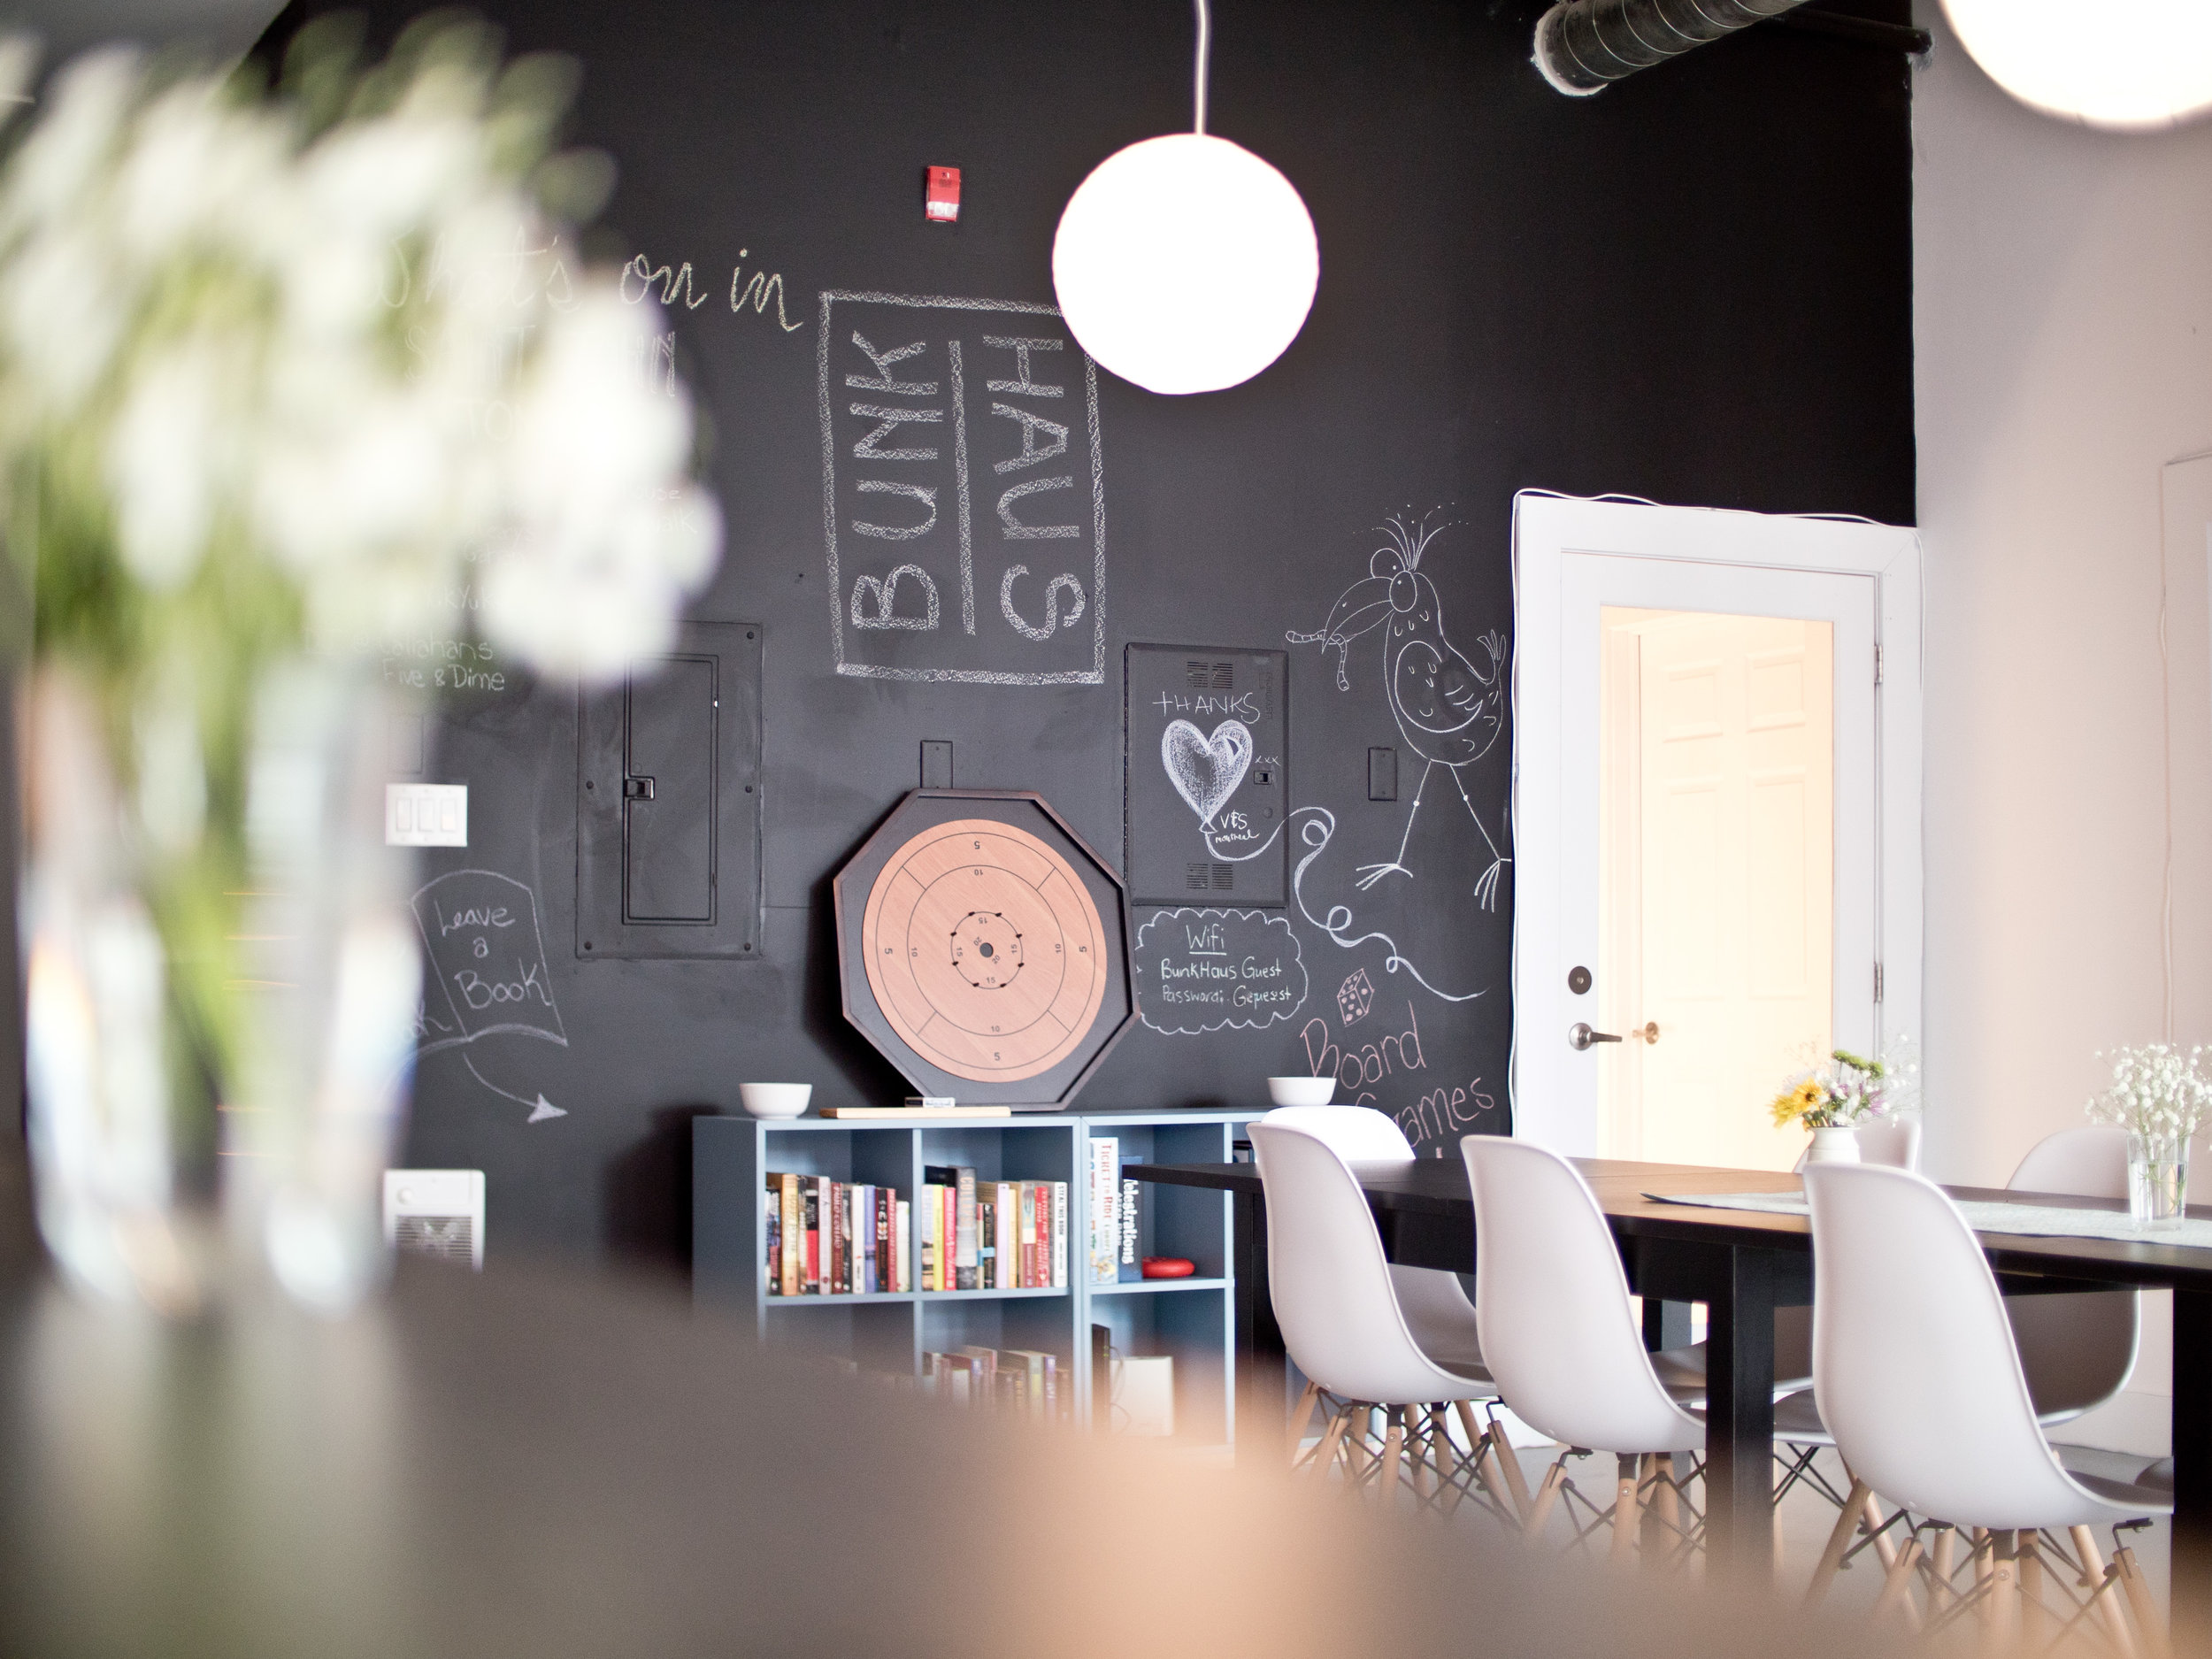 We've always got our ear to the ground for the latest happenings around our beautiful port city and are constantly updating our chalkboard so you know what's happening around our vibrant city. Know of something that's missing? Let one of our staff know and we'll be sure to update it asap. A little far away from our chalkboard?.